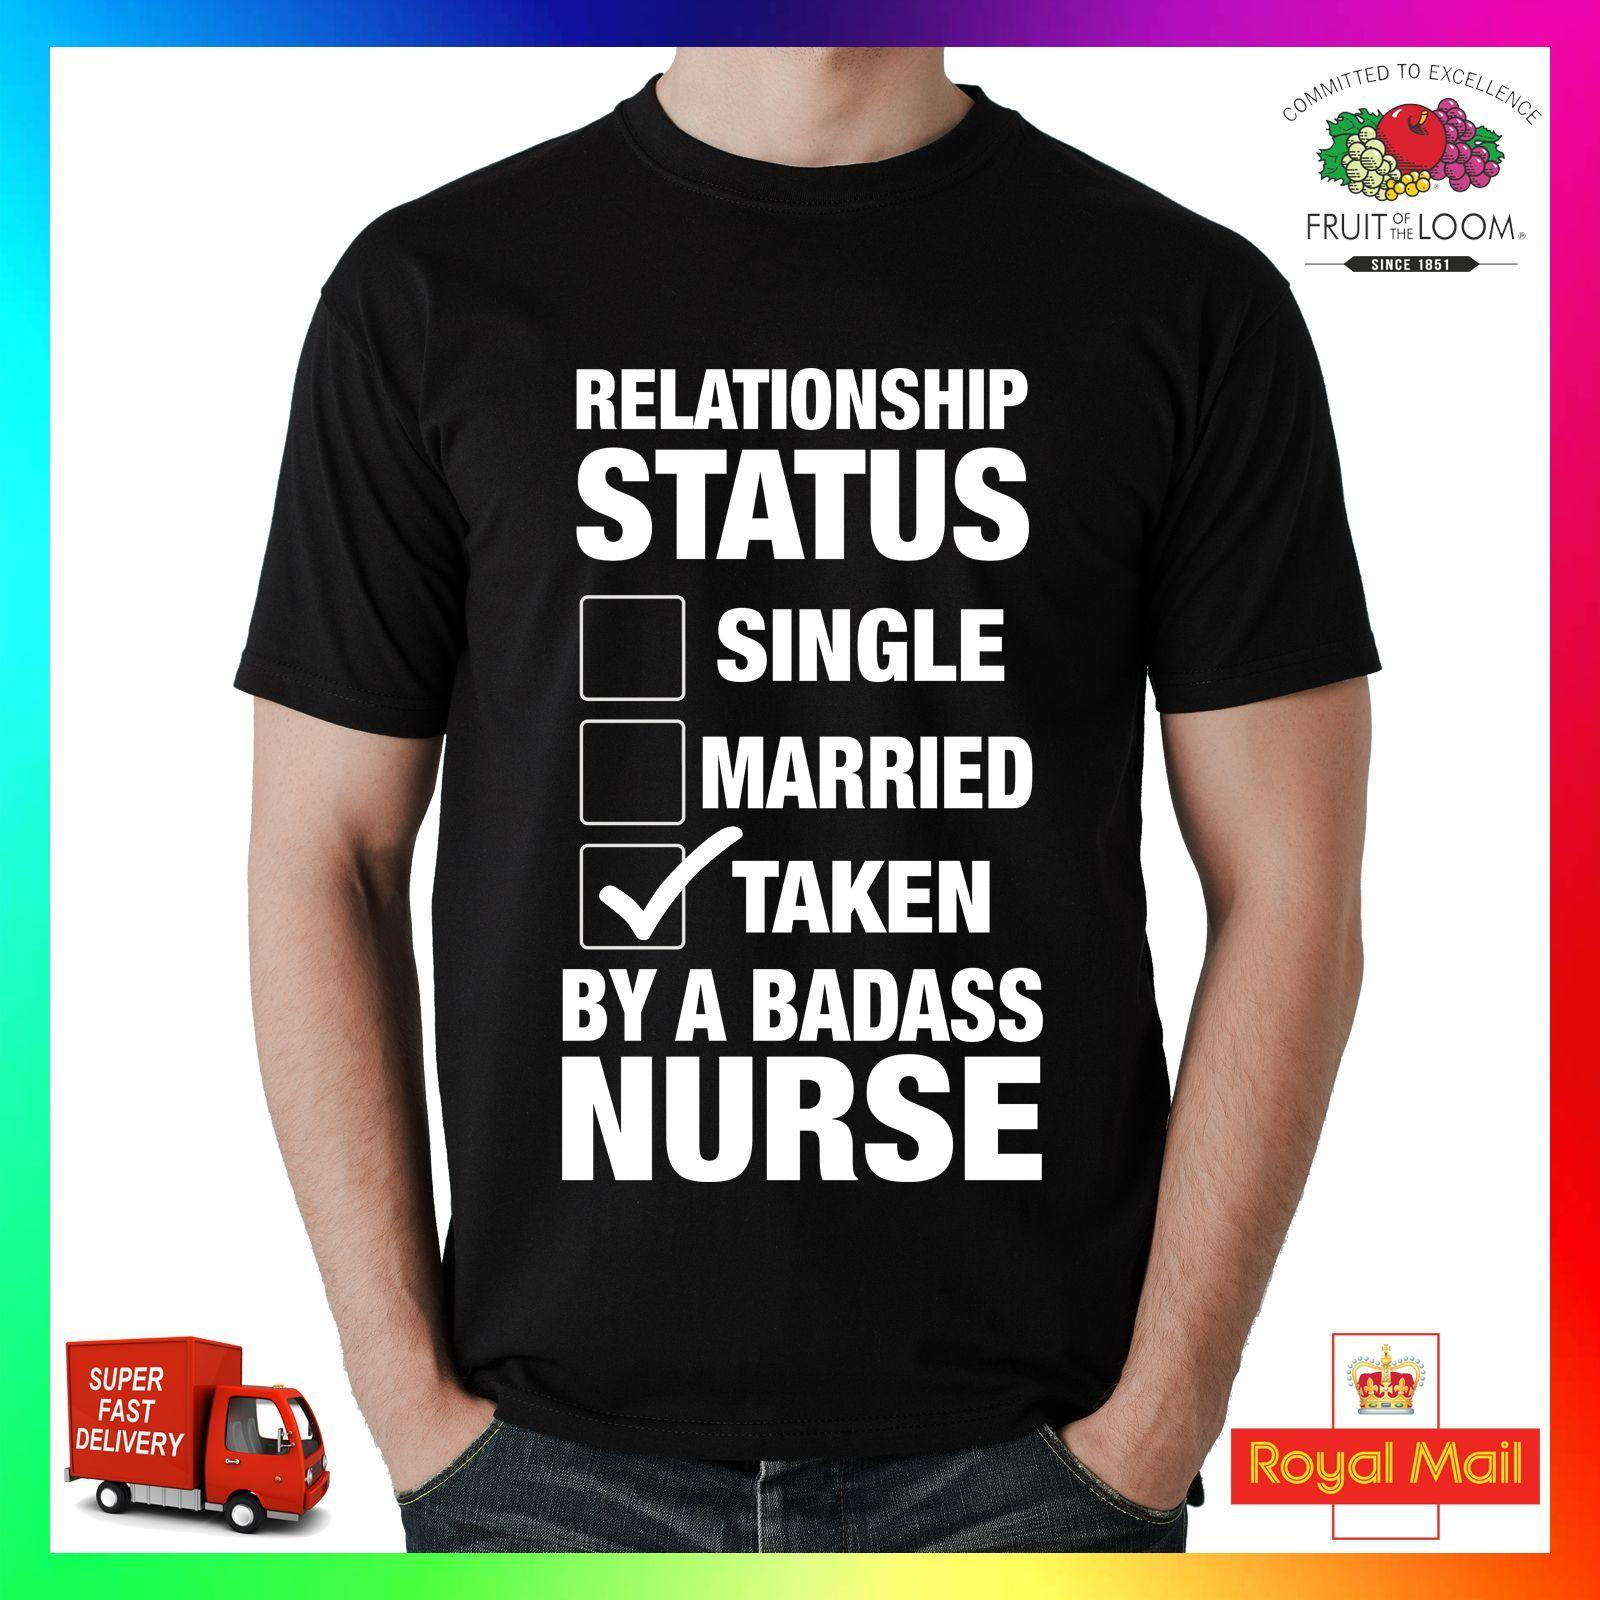 da0673bb6 Relationship Status Taken By A Badass Nurse T Shirt Tee Tshirt Cool Funny  Gift Funny Unisex Casual Tshirt Tee Shirts Online Cool Tee Shirts From ...